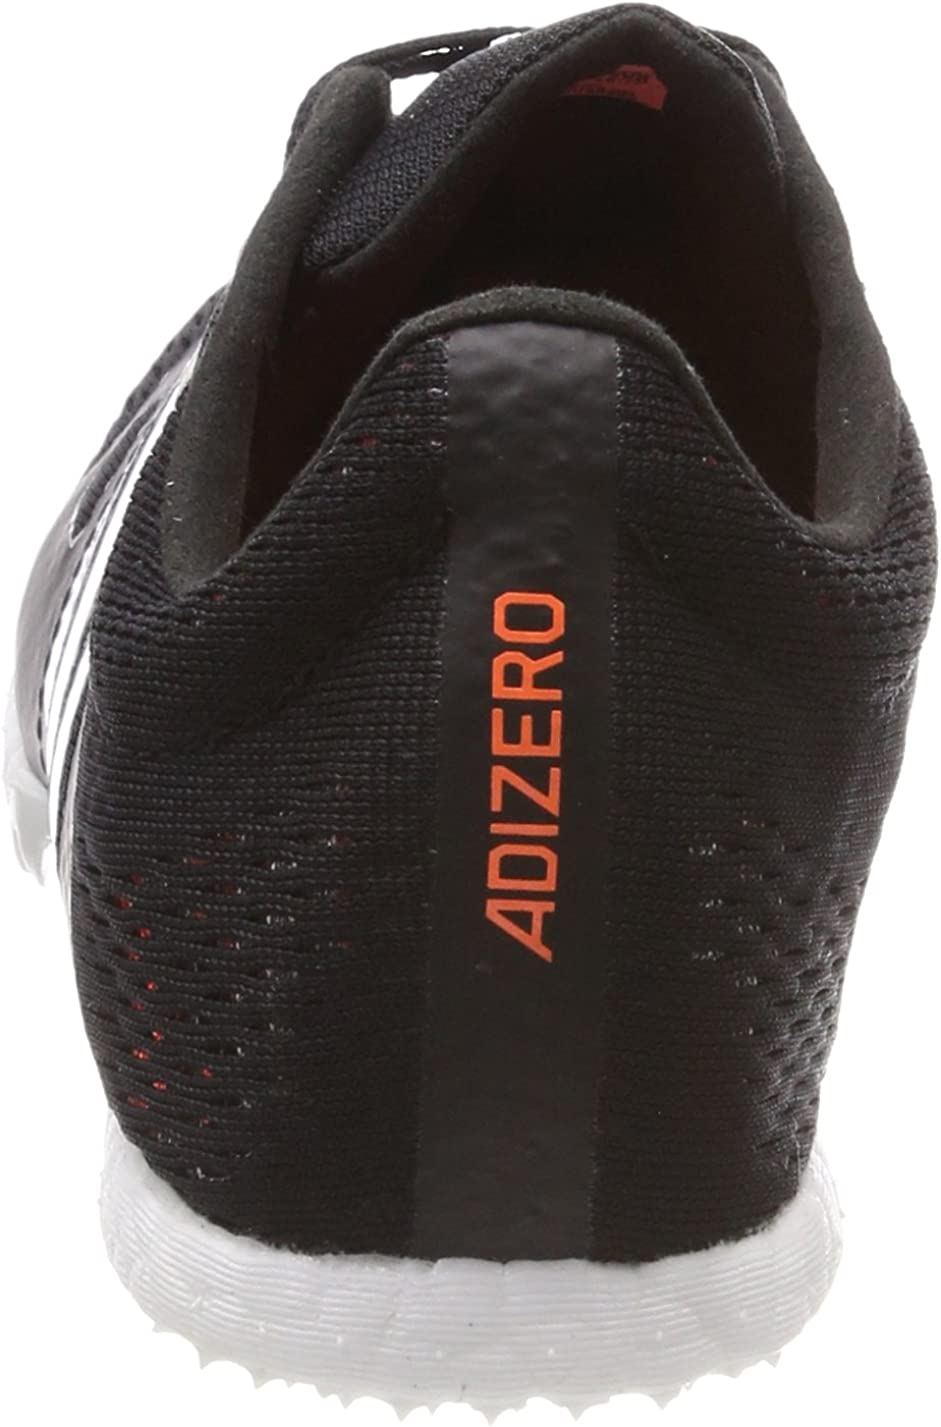 adidas Adizero Md Track & Field Shoes Black Core Black Ftwr White Hi Res Orange S18 Core Black Ftwr White Hi Res Orange S18